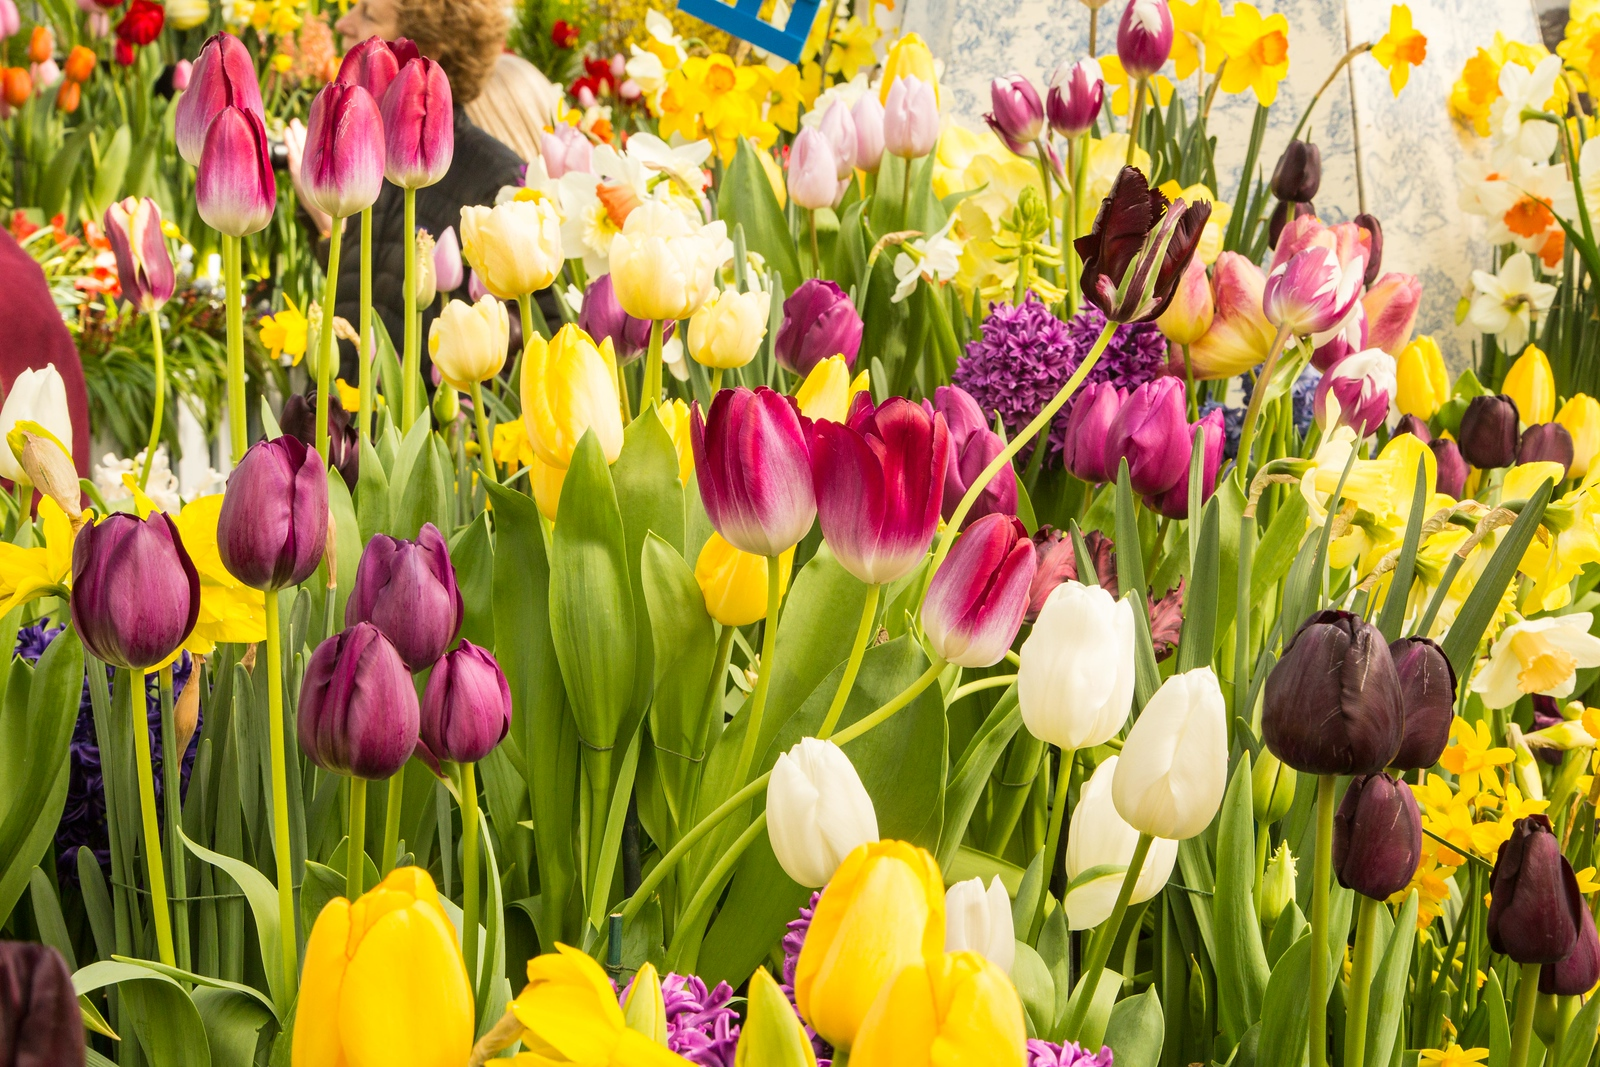 Tulips and daffodils at the Spring Bulb Show, March 2017